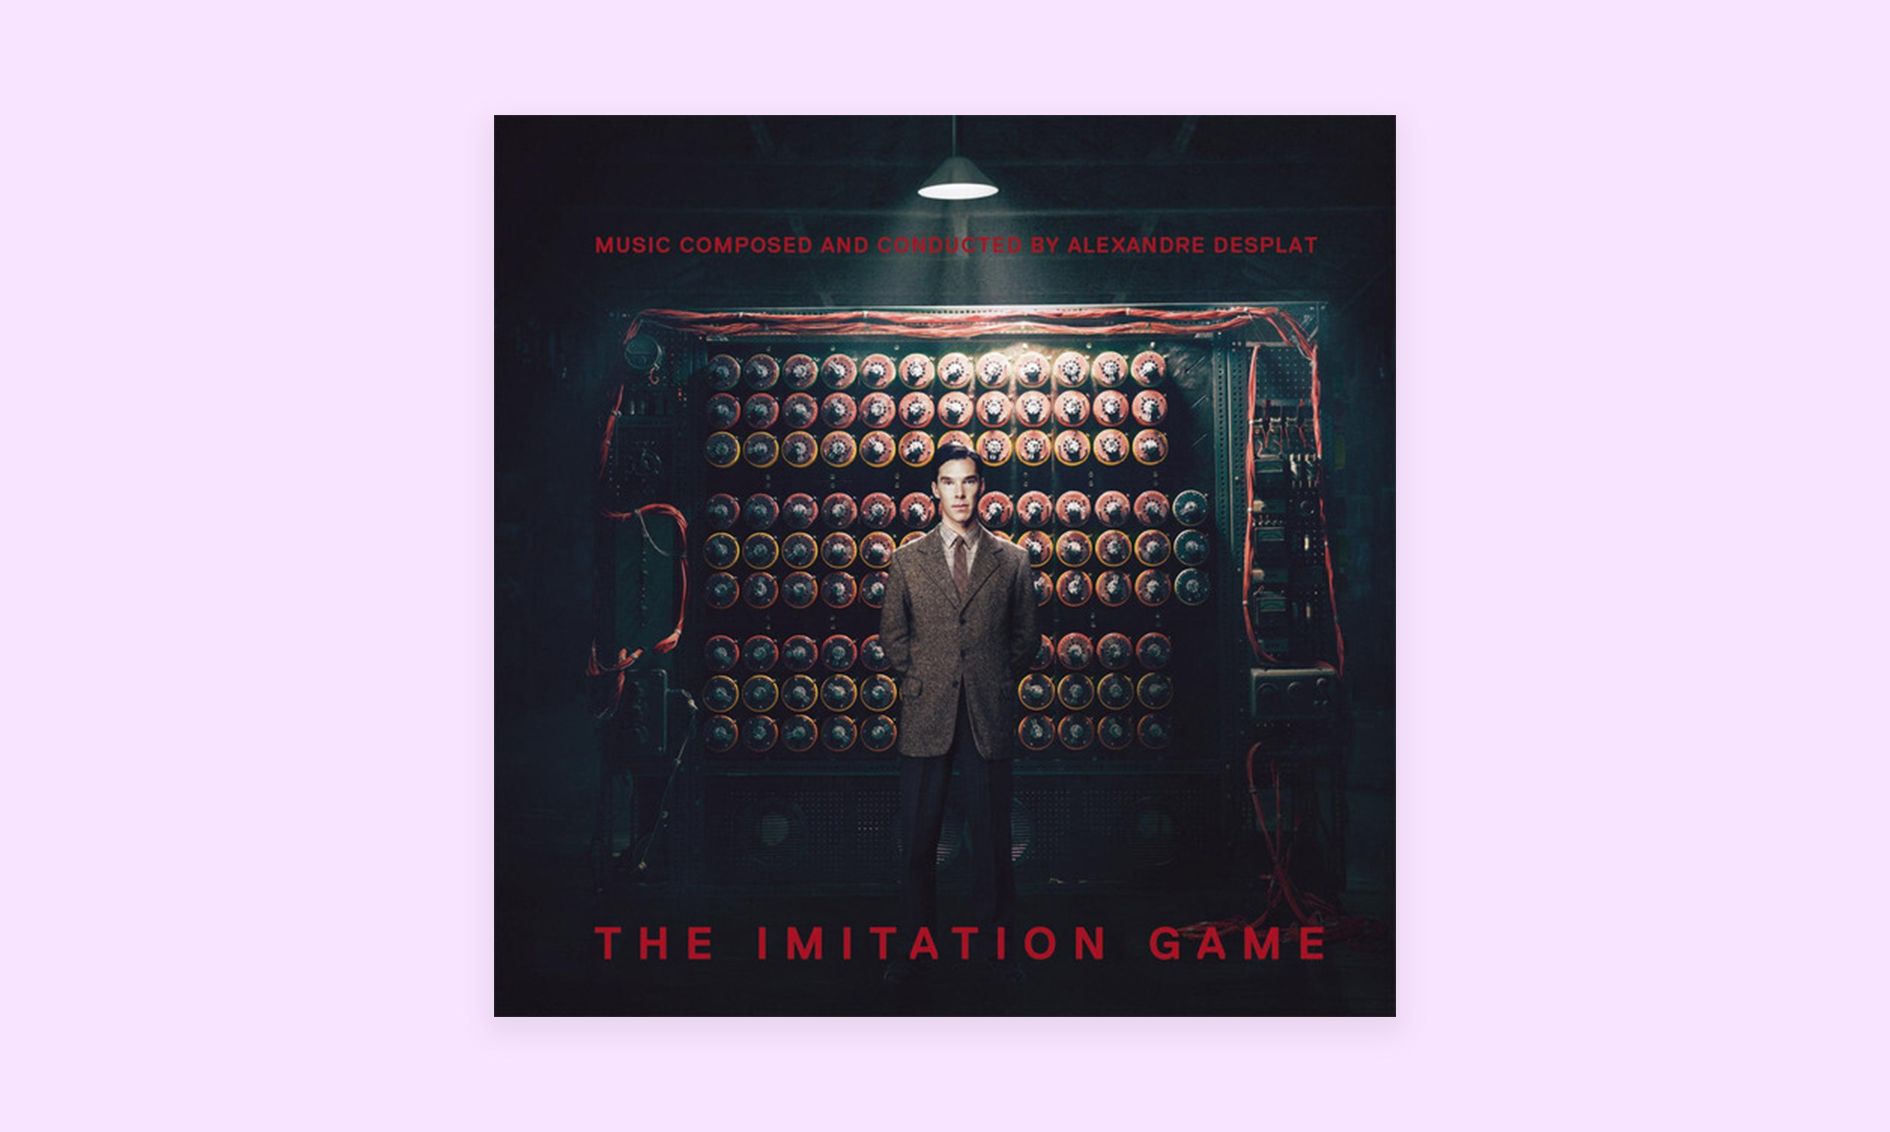 Film scores to help you focus: The Imitation Game